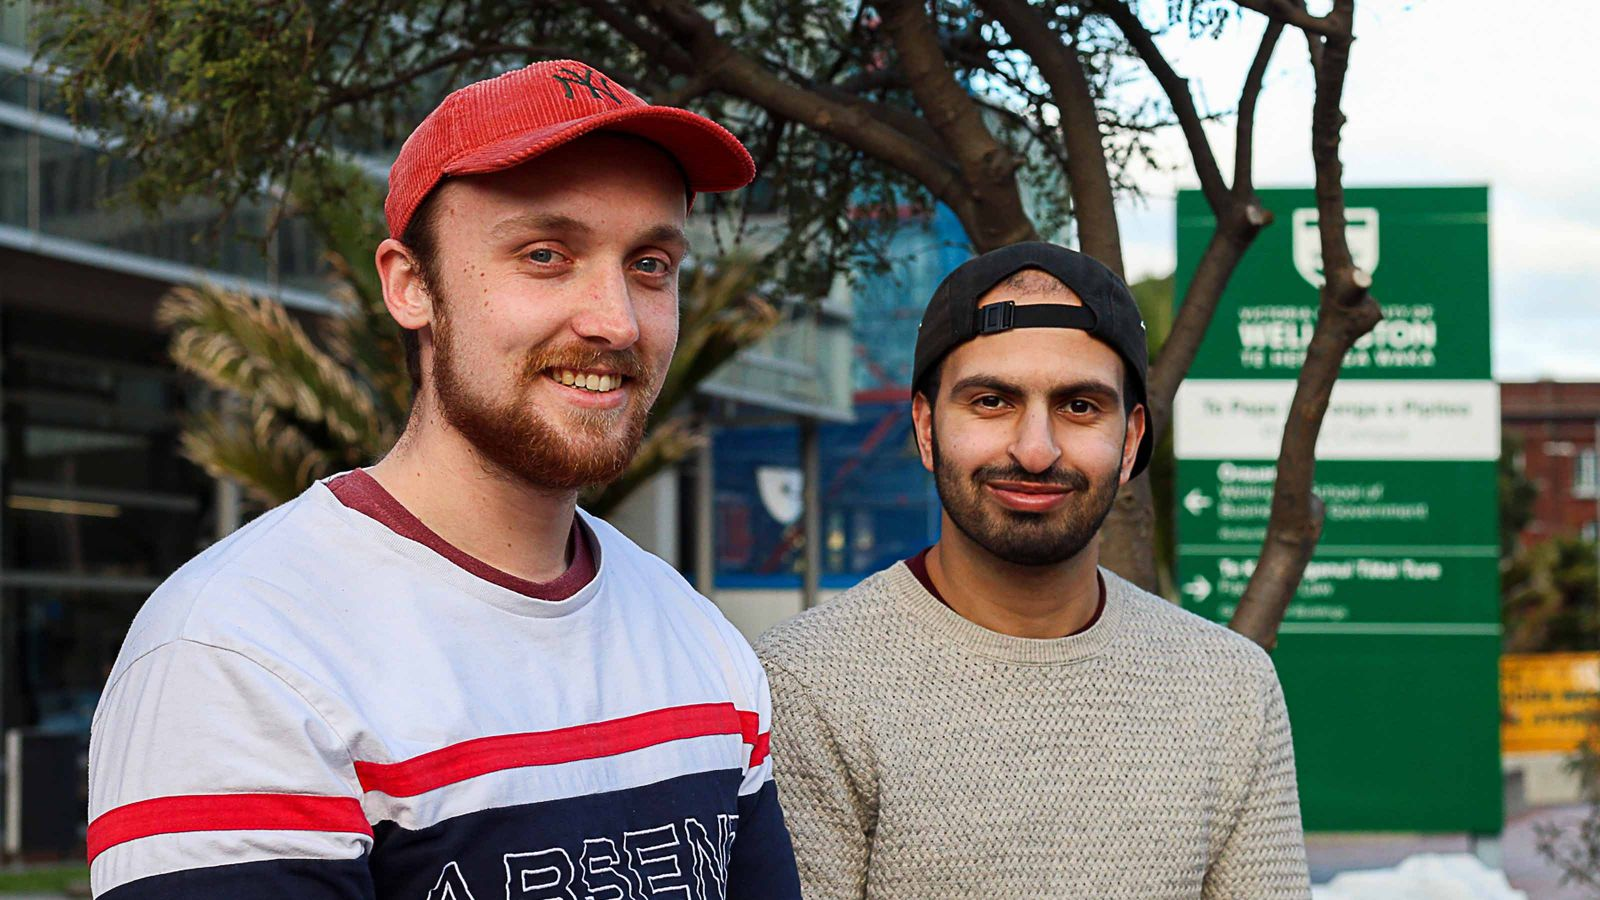 Cameron and Mohammad from Qisma Tech